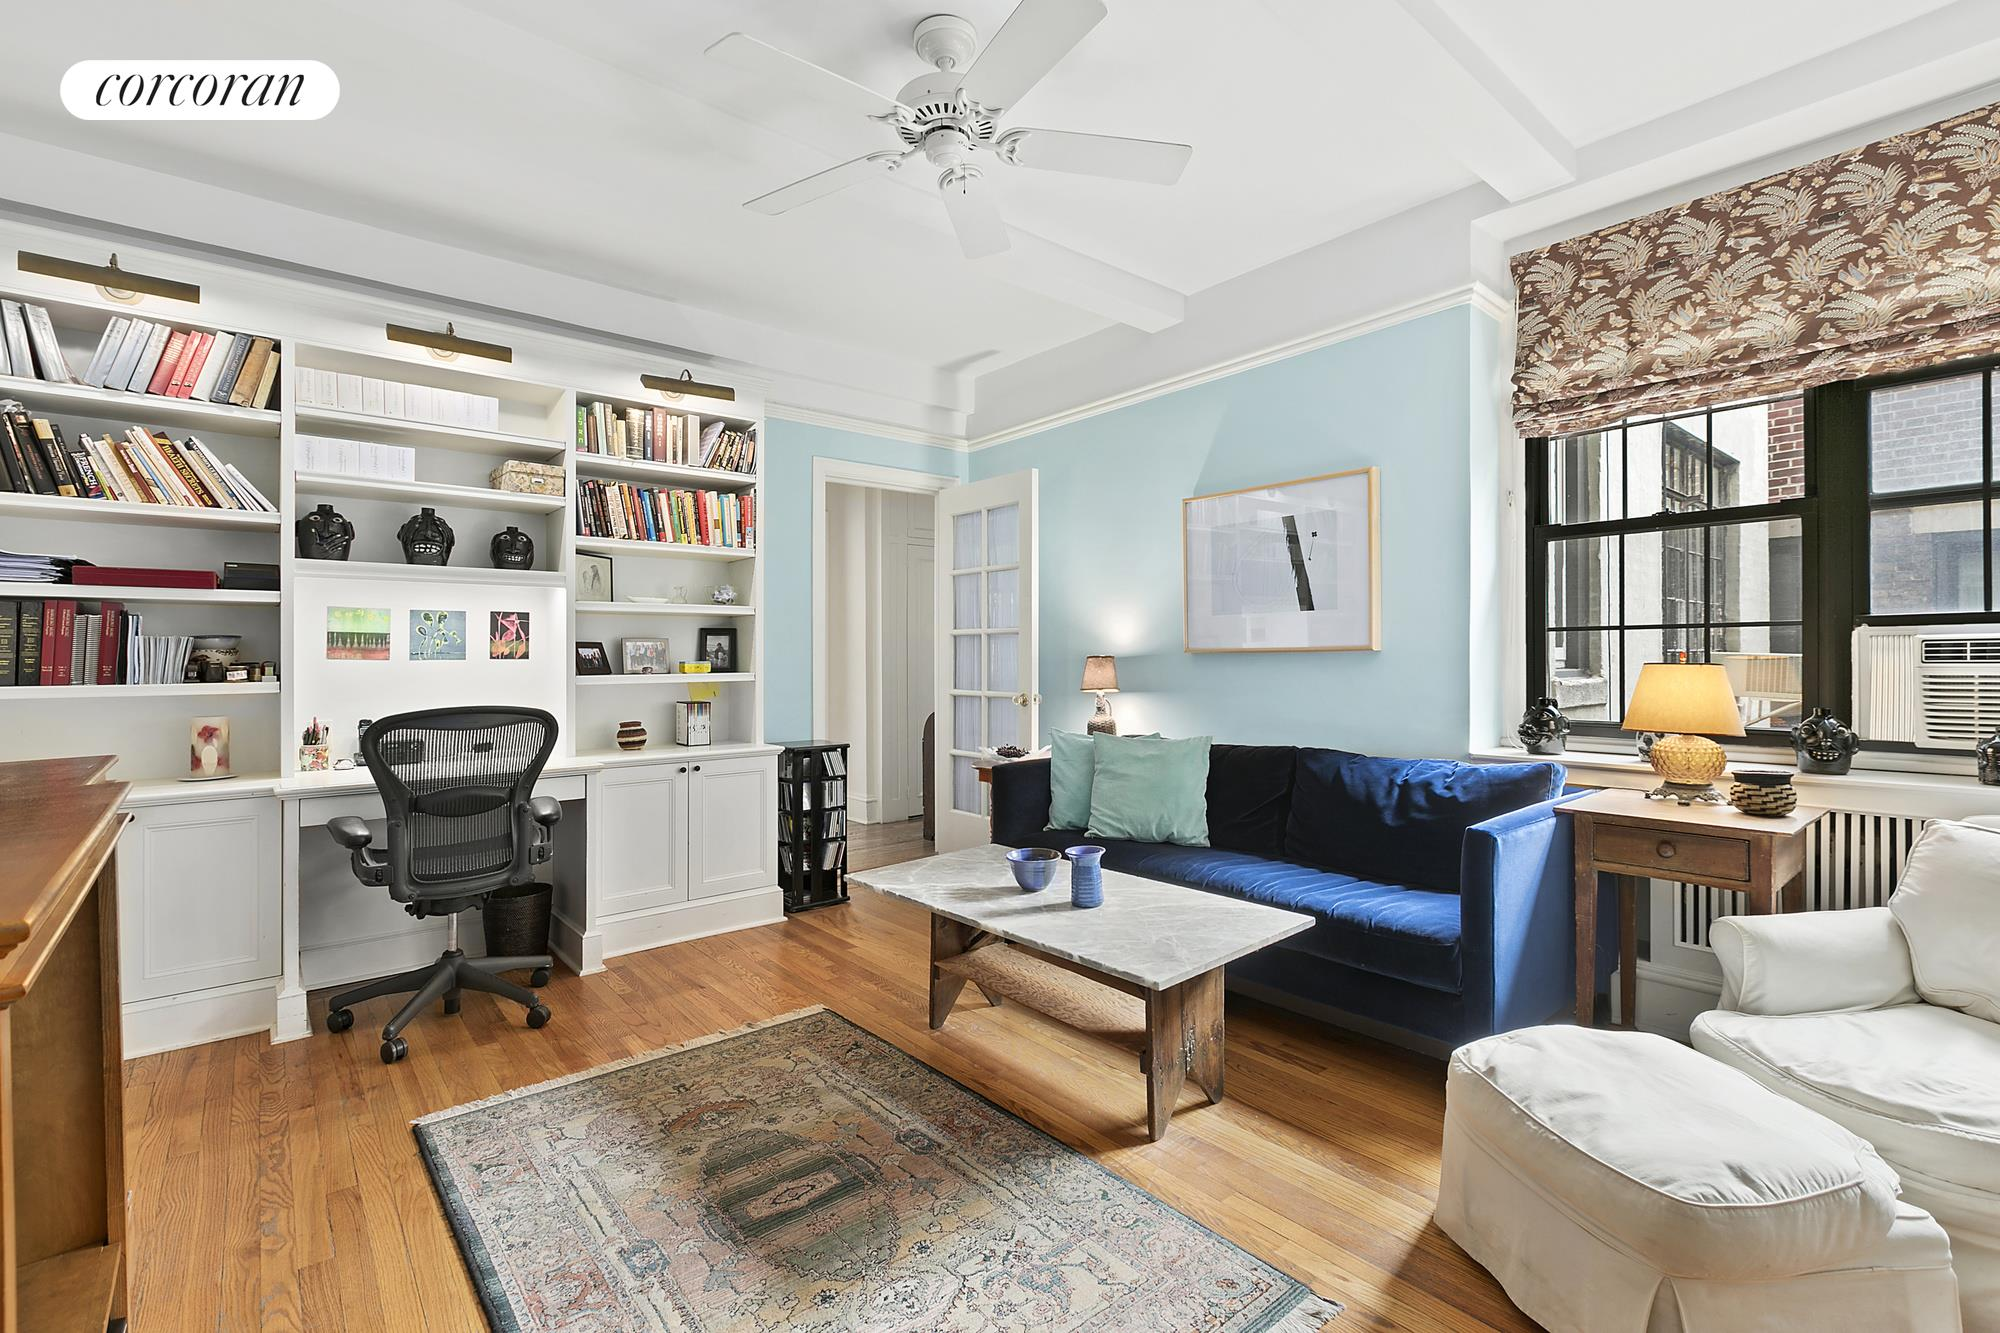 210 West 78th Street, 6AB, Living Room view 2